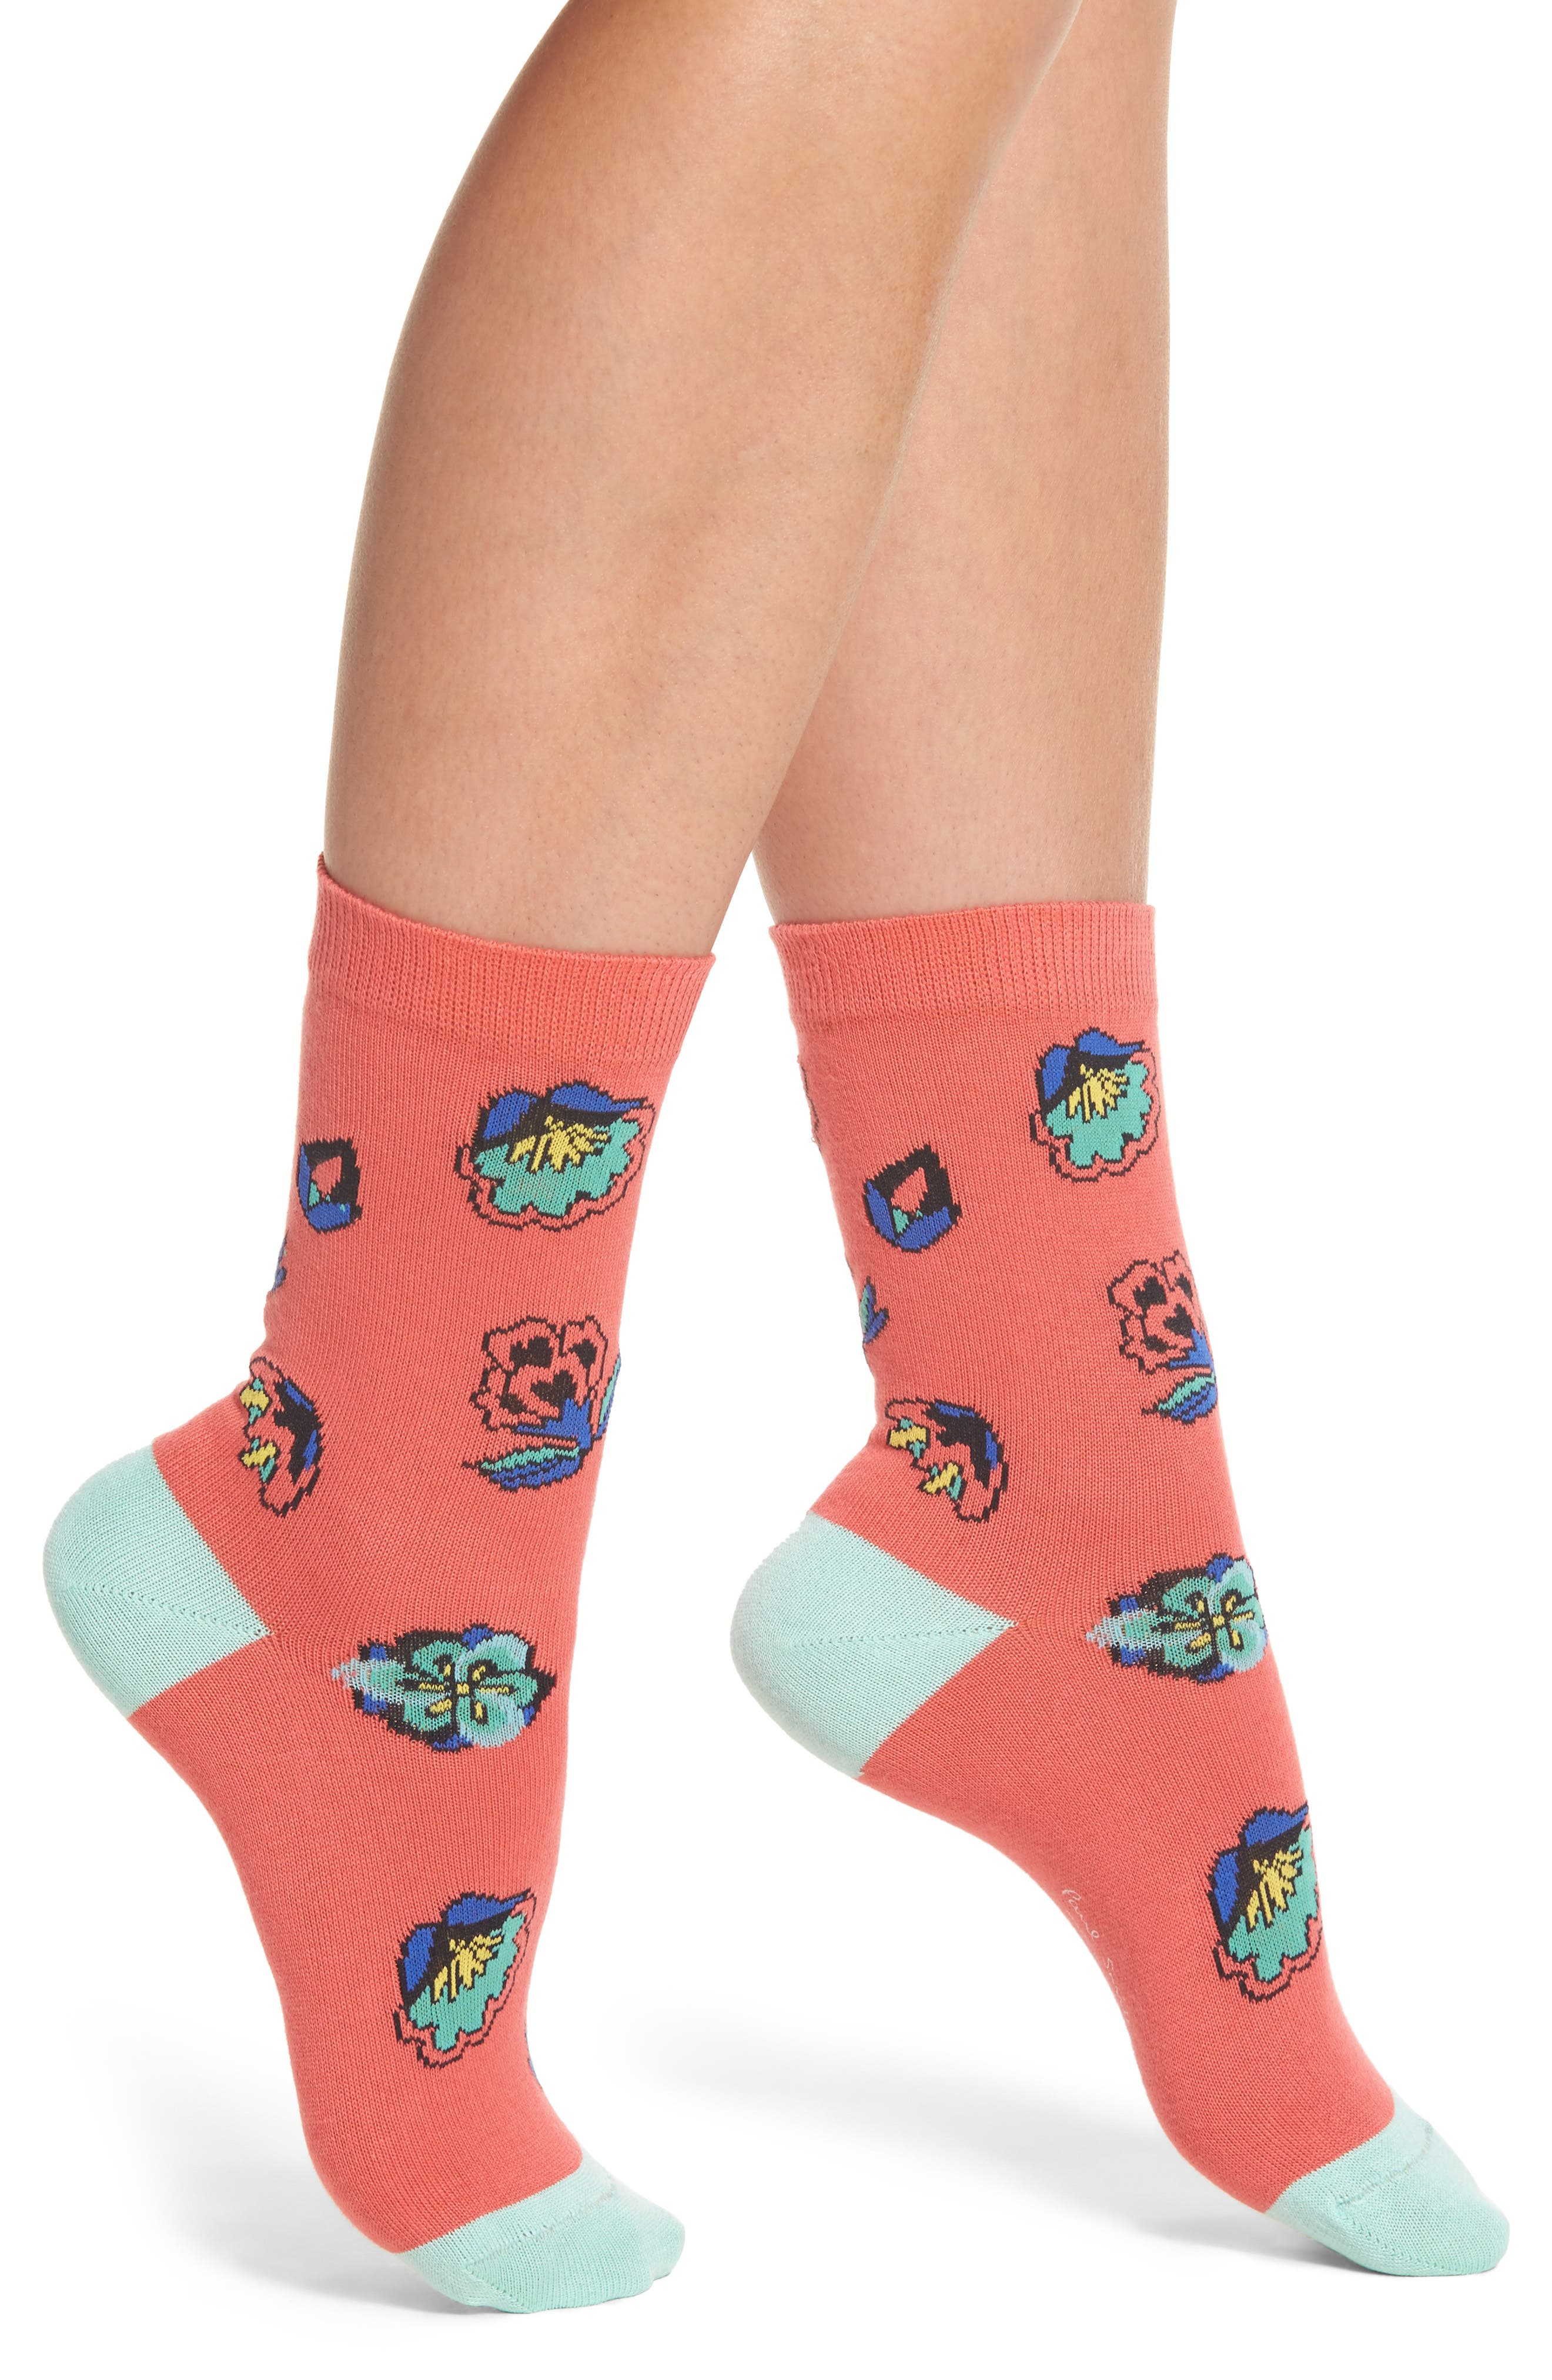 Paul Smith Eloise Kyoto Crew Socks